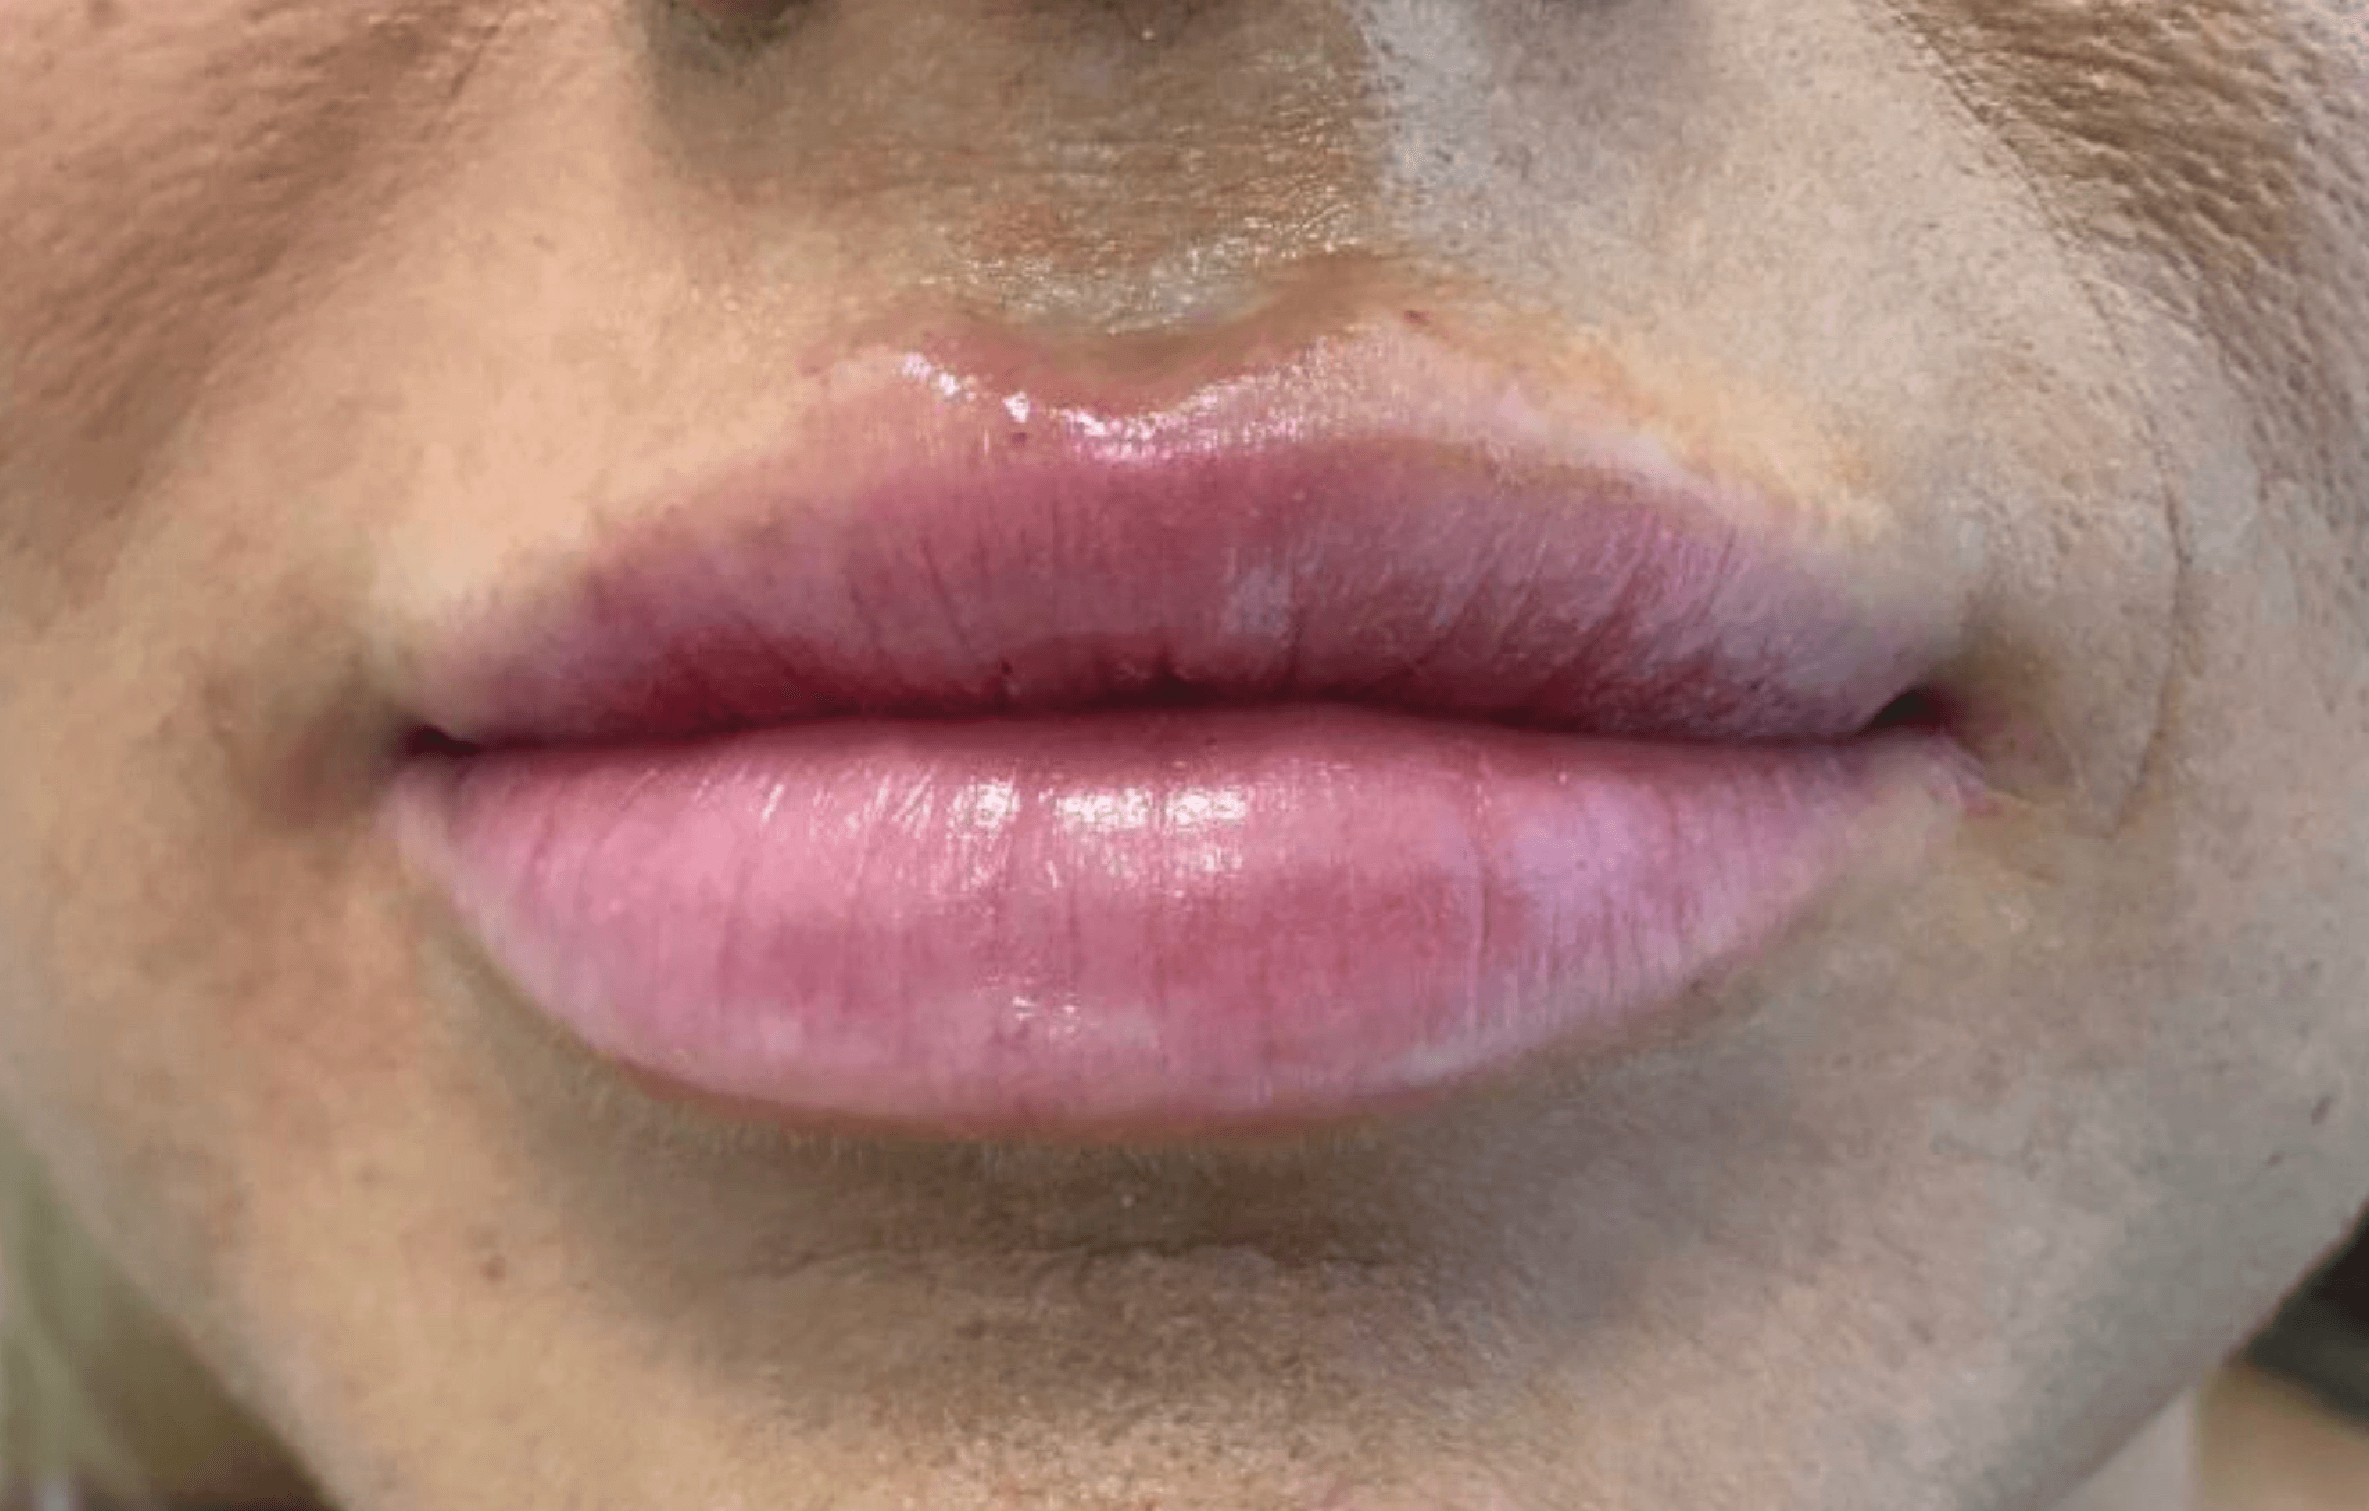 Juvederm Lips - Dermal Filler After